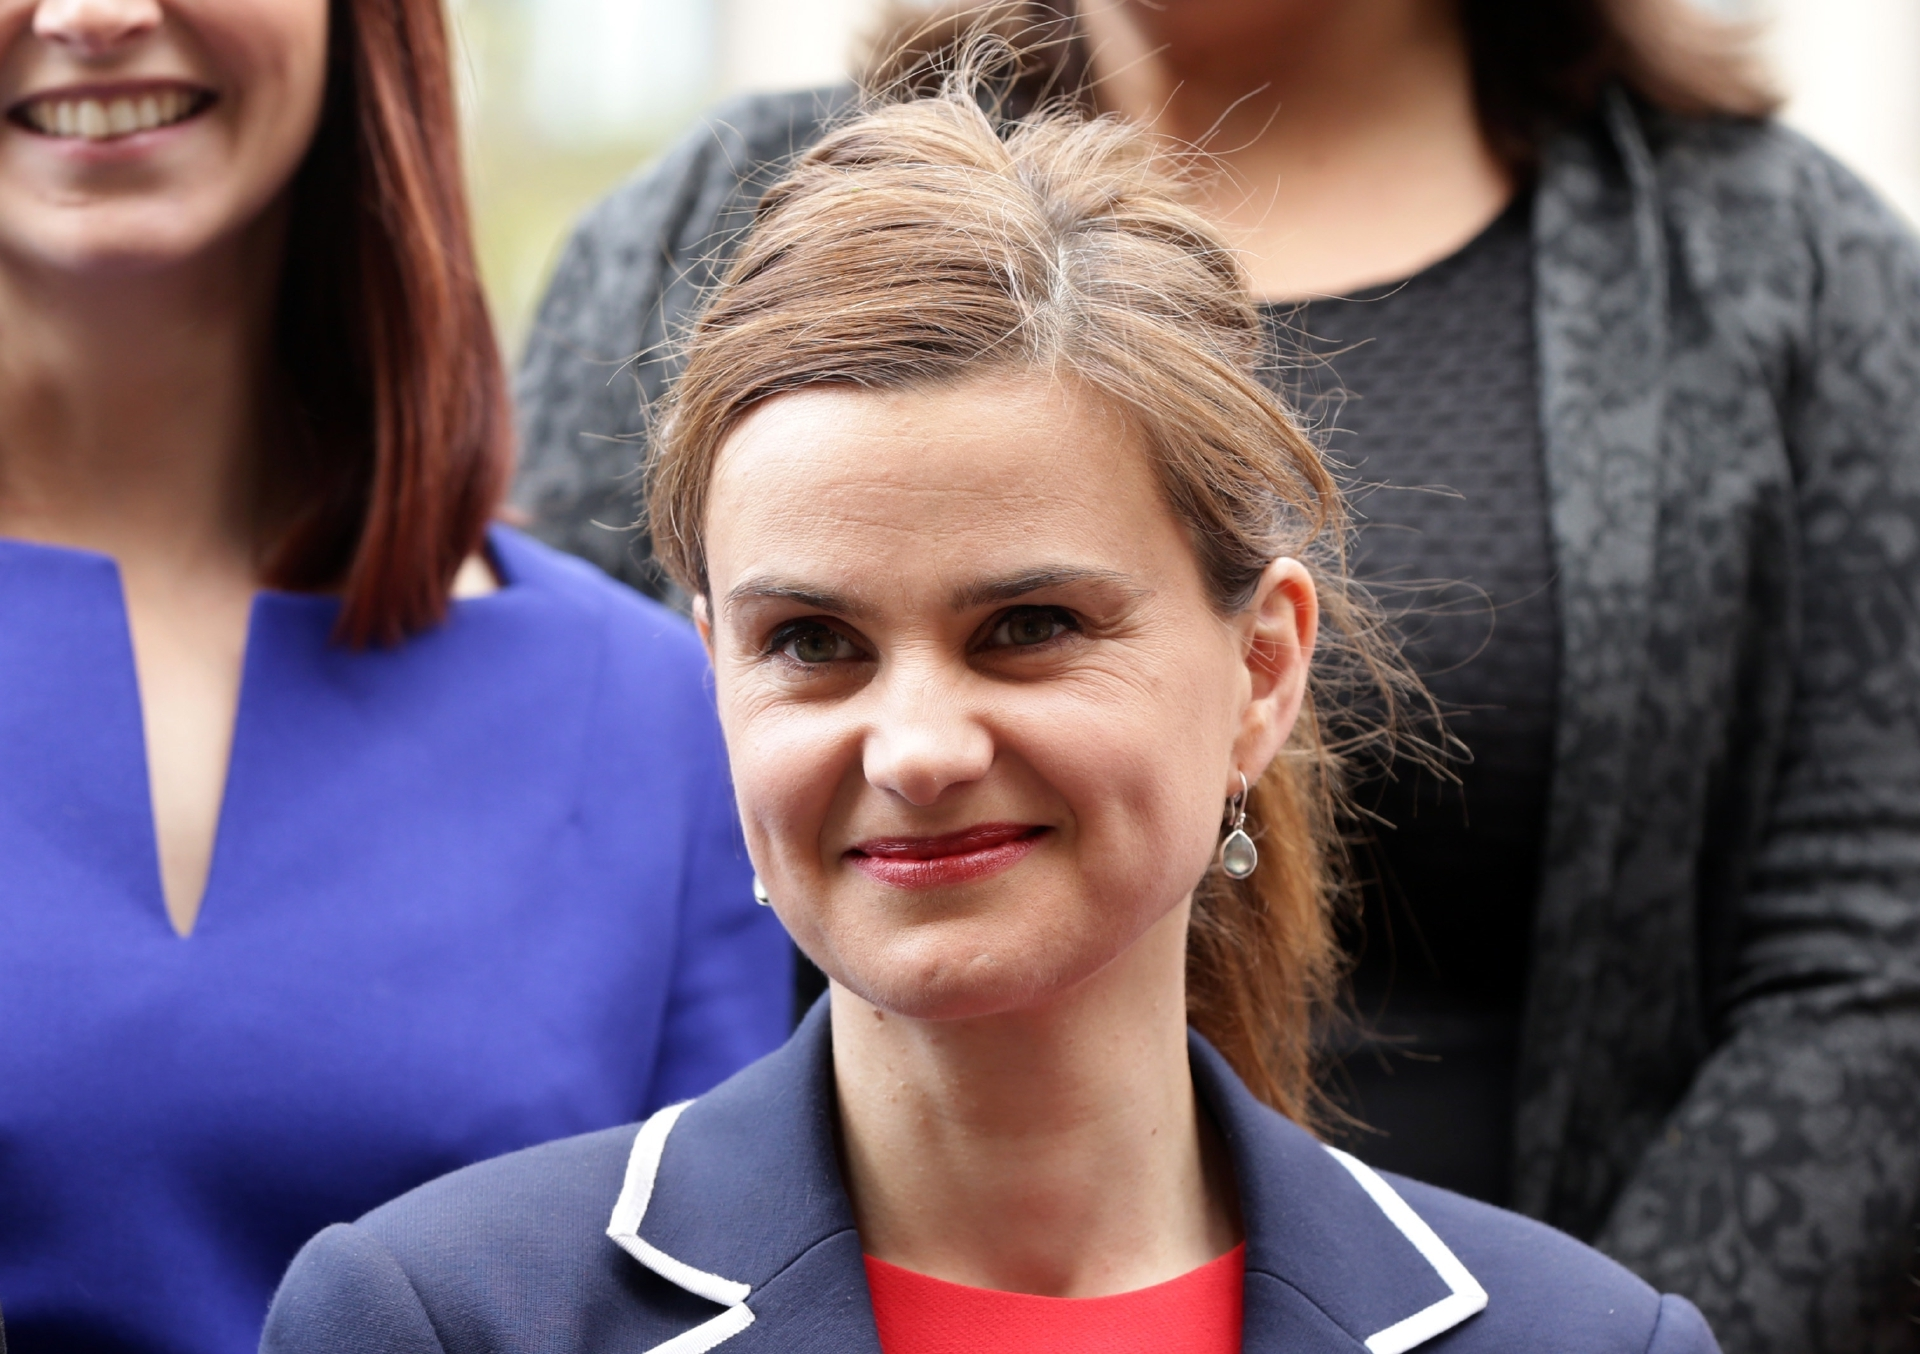 Jo Cox's husband will appear at the festival